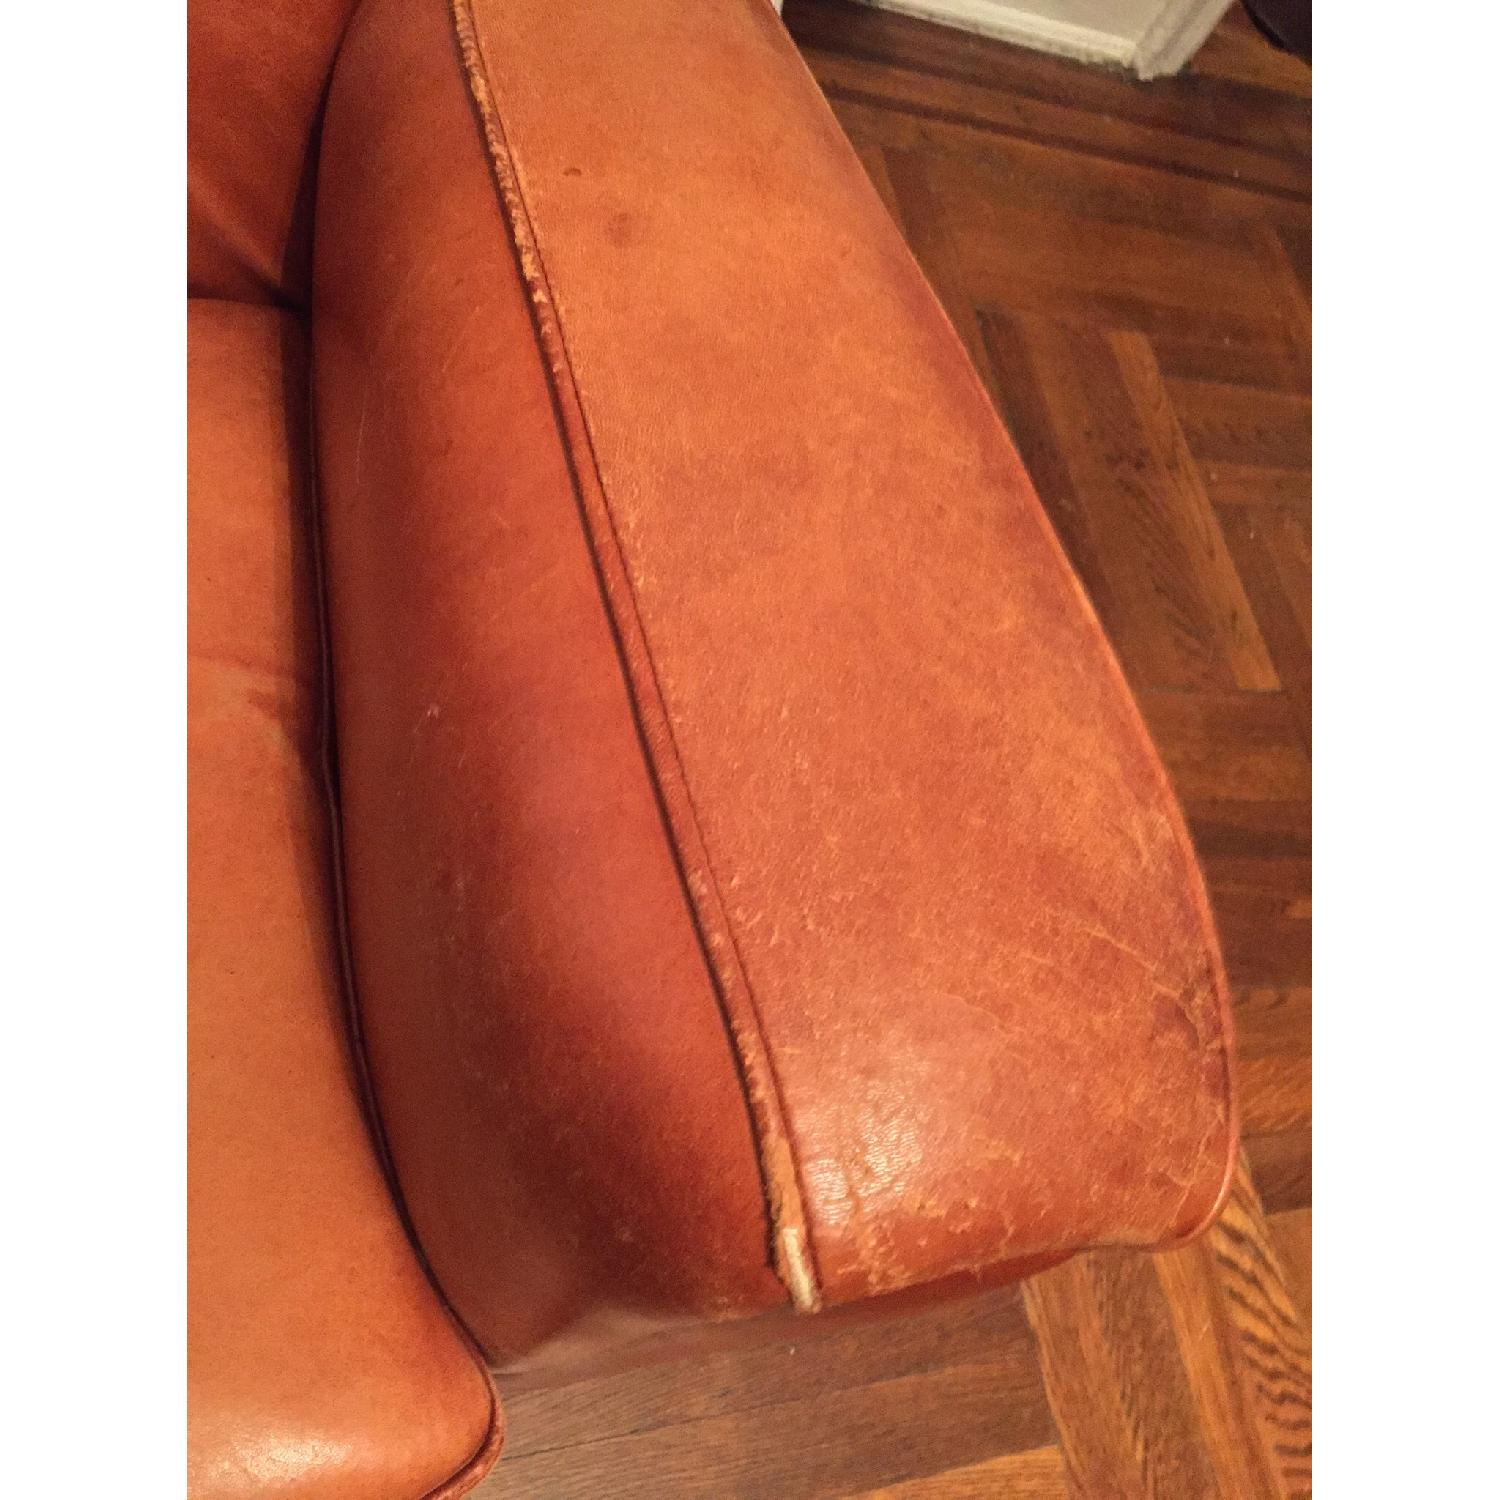 Portico Leather Club Chair - image-9